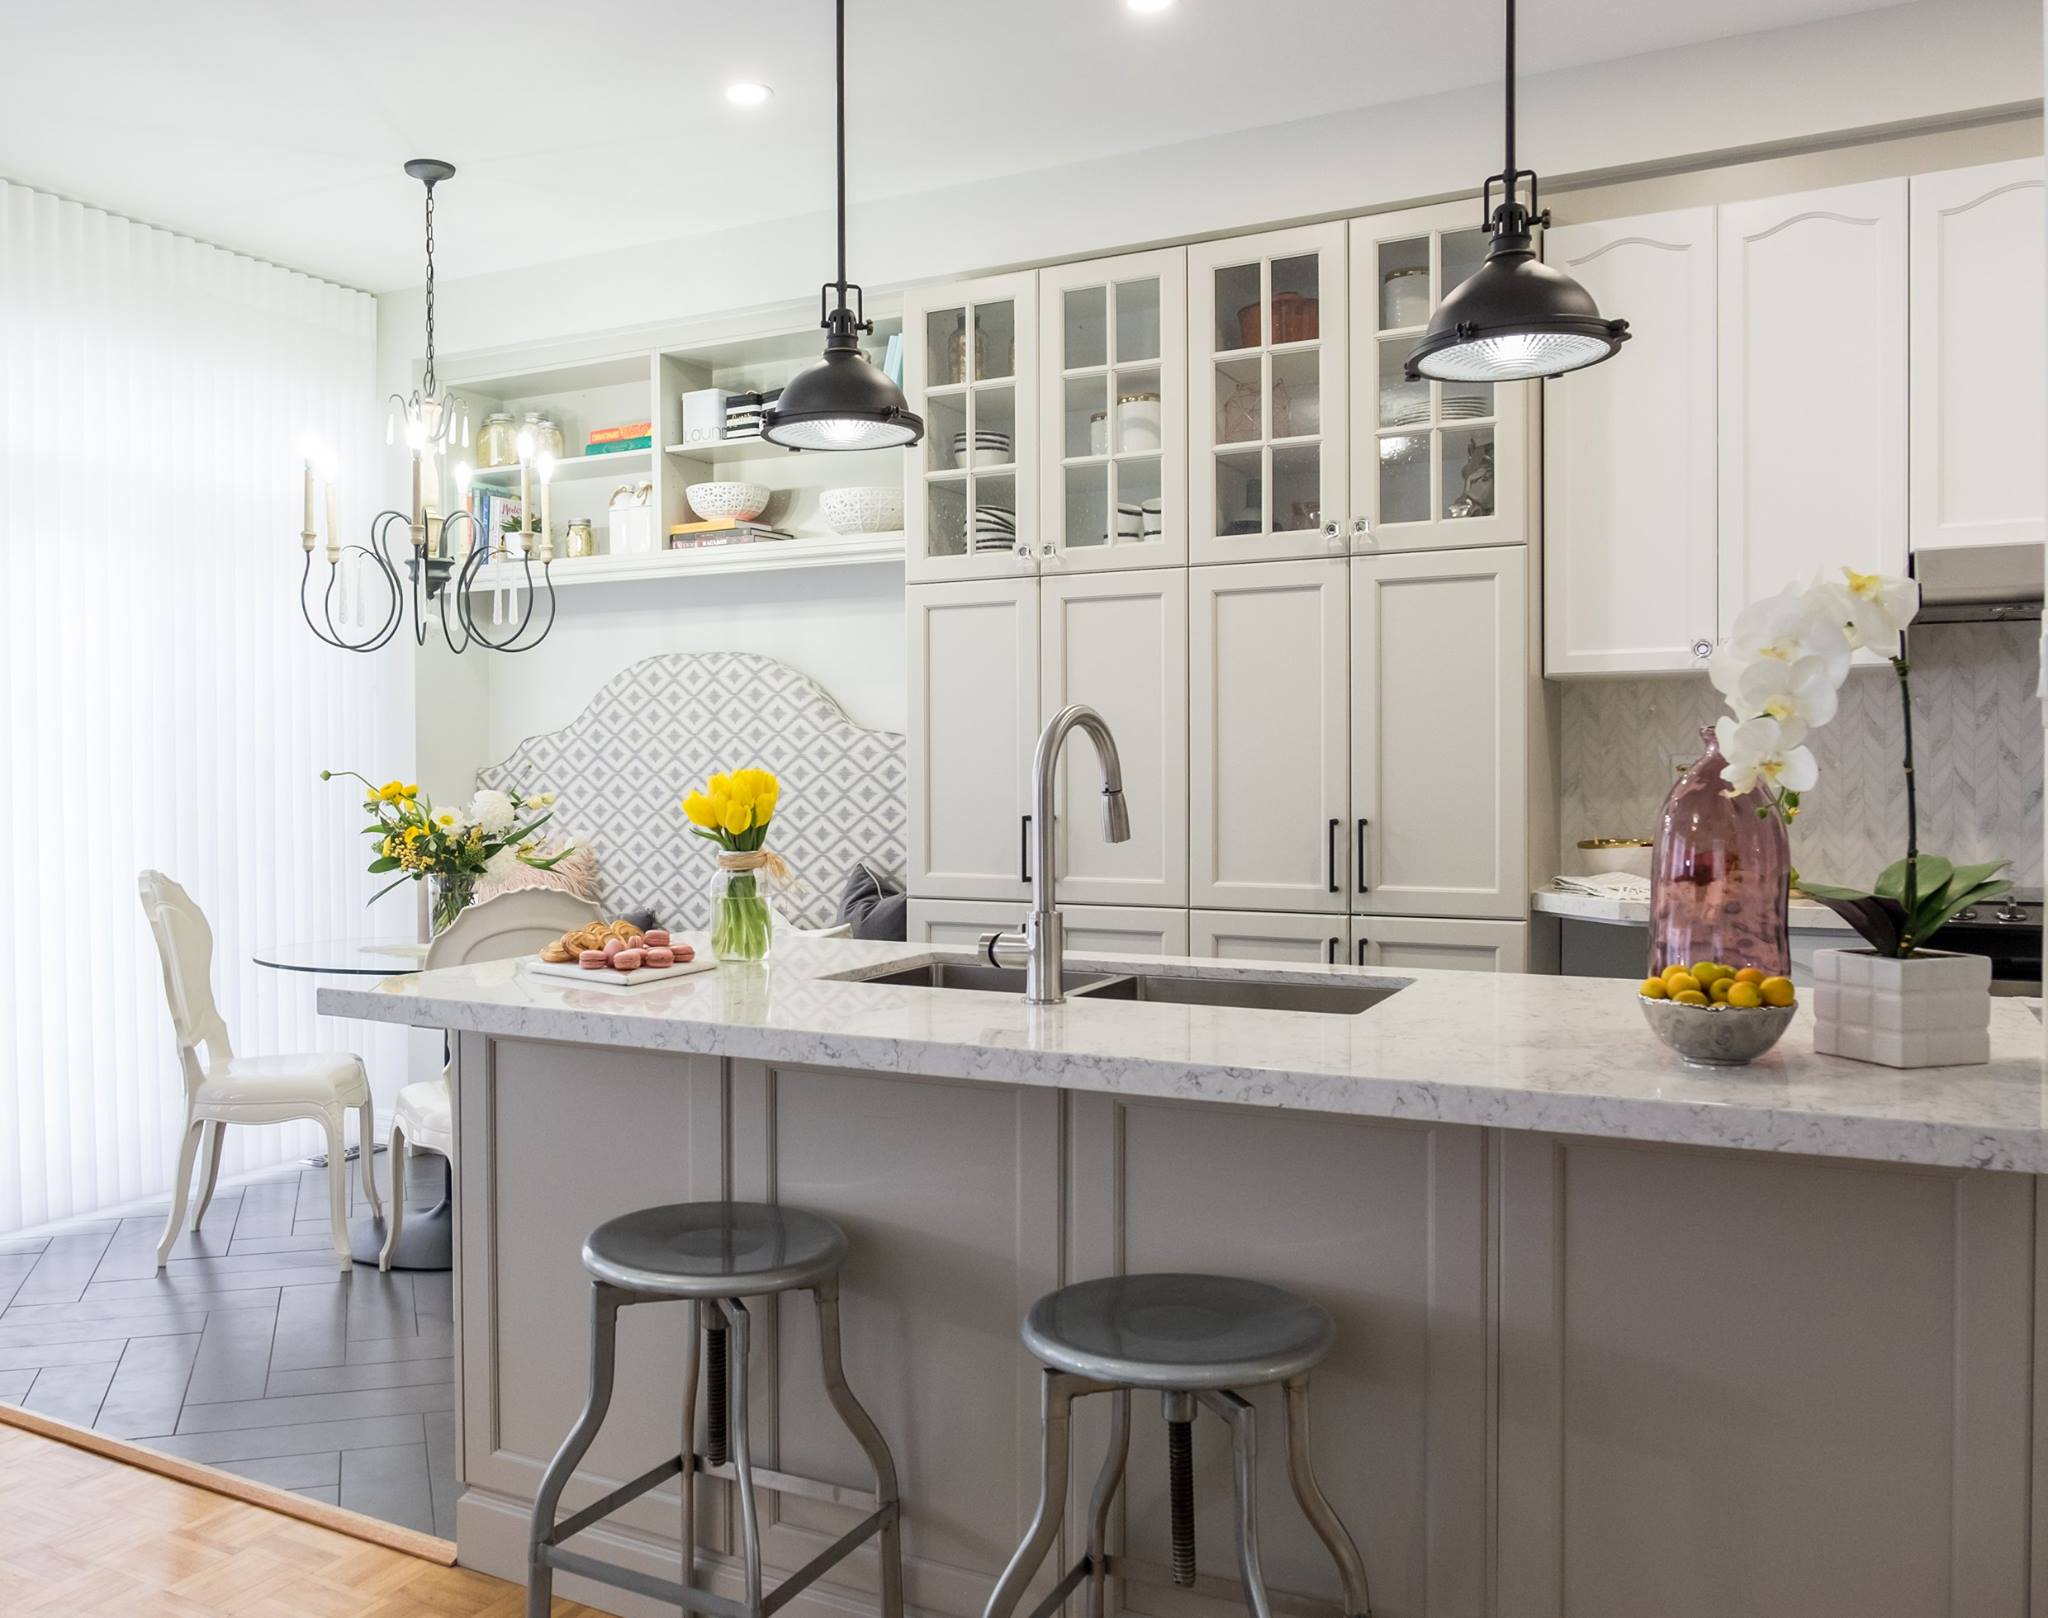 Property brothers in toronto modernized kitchen with for Property brothers kitchen remodels